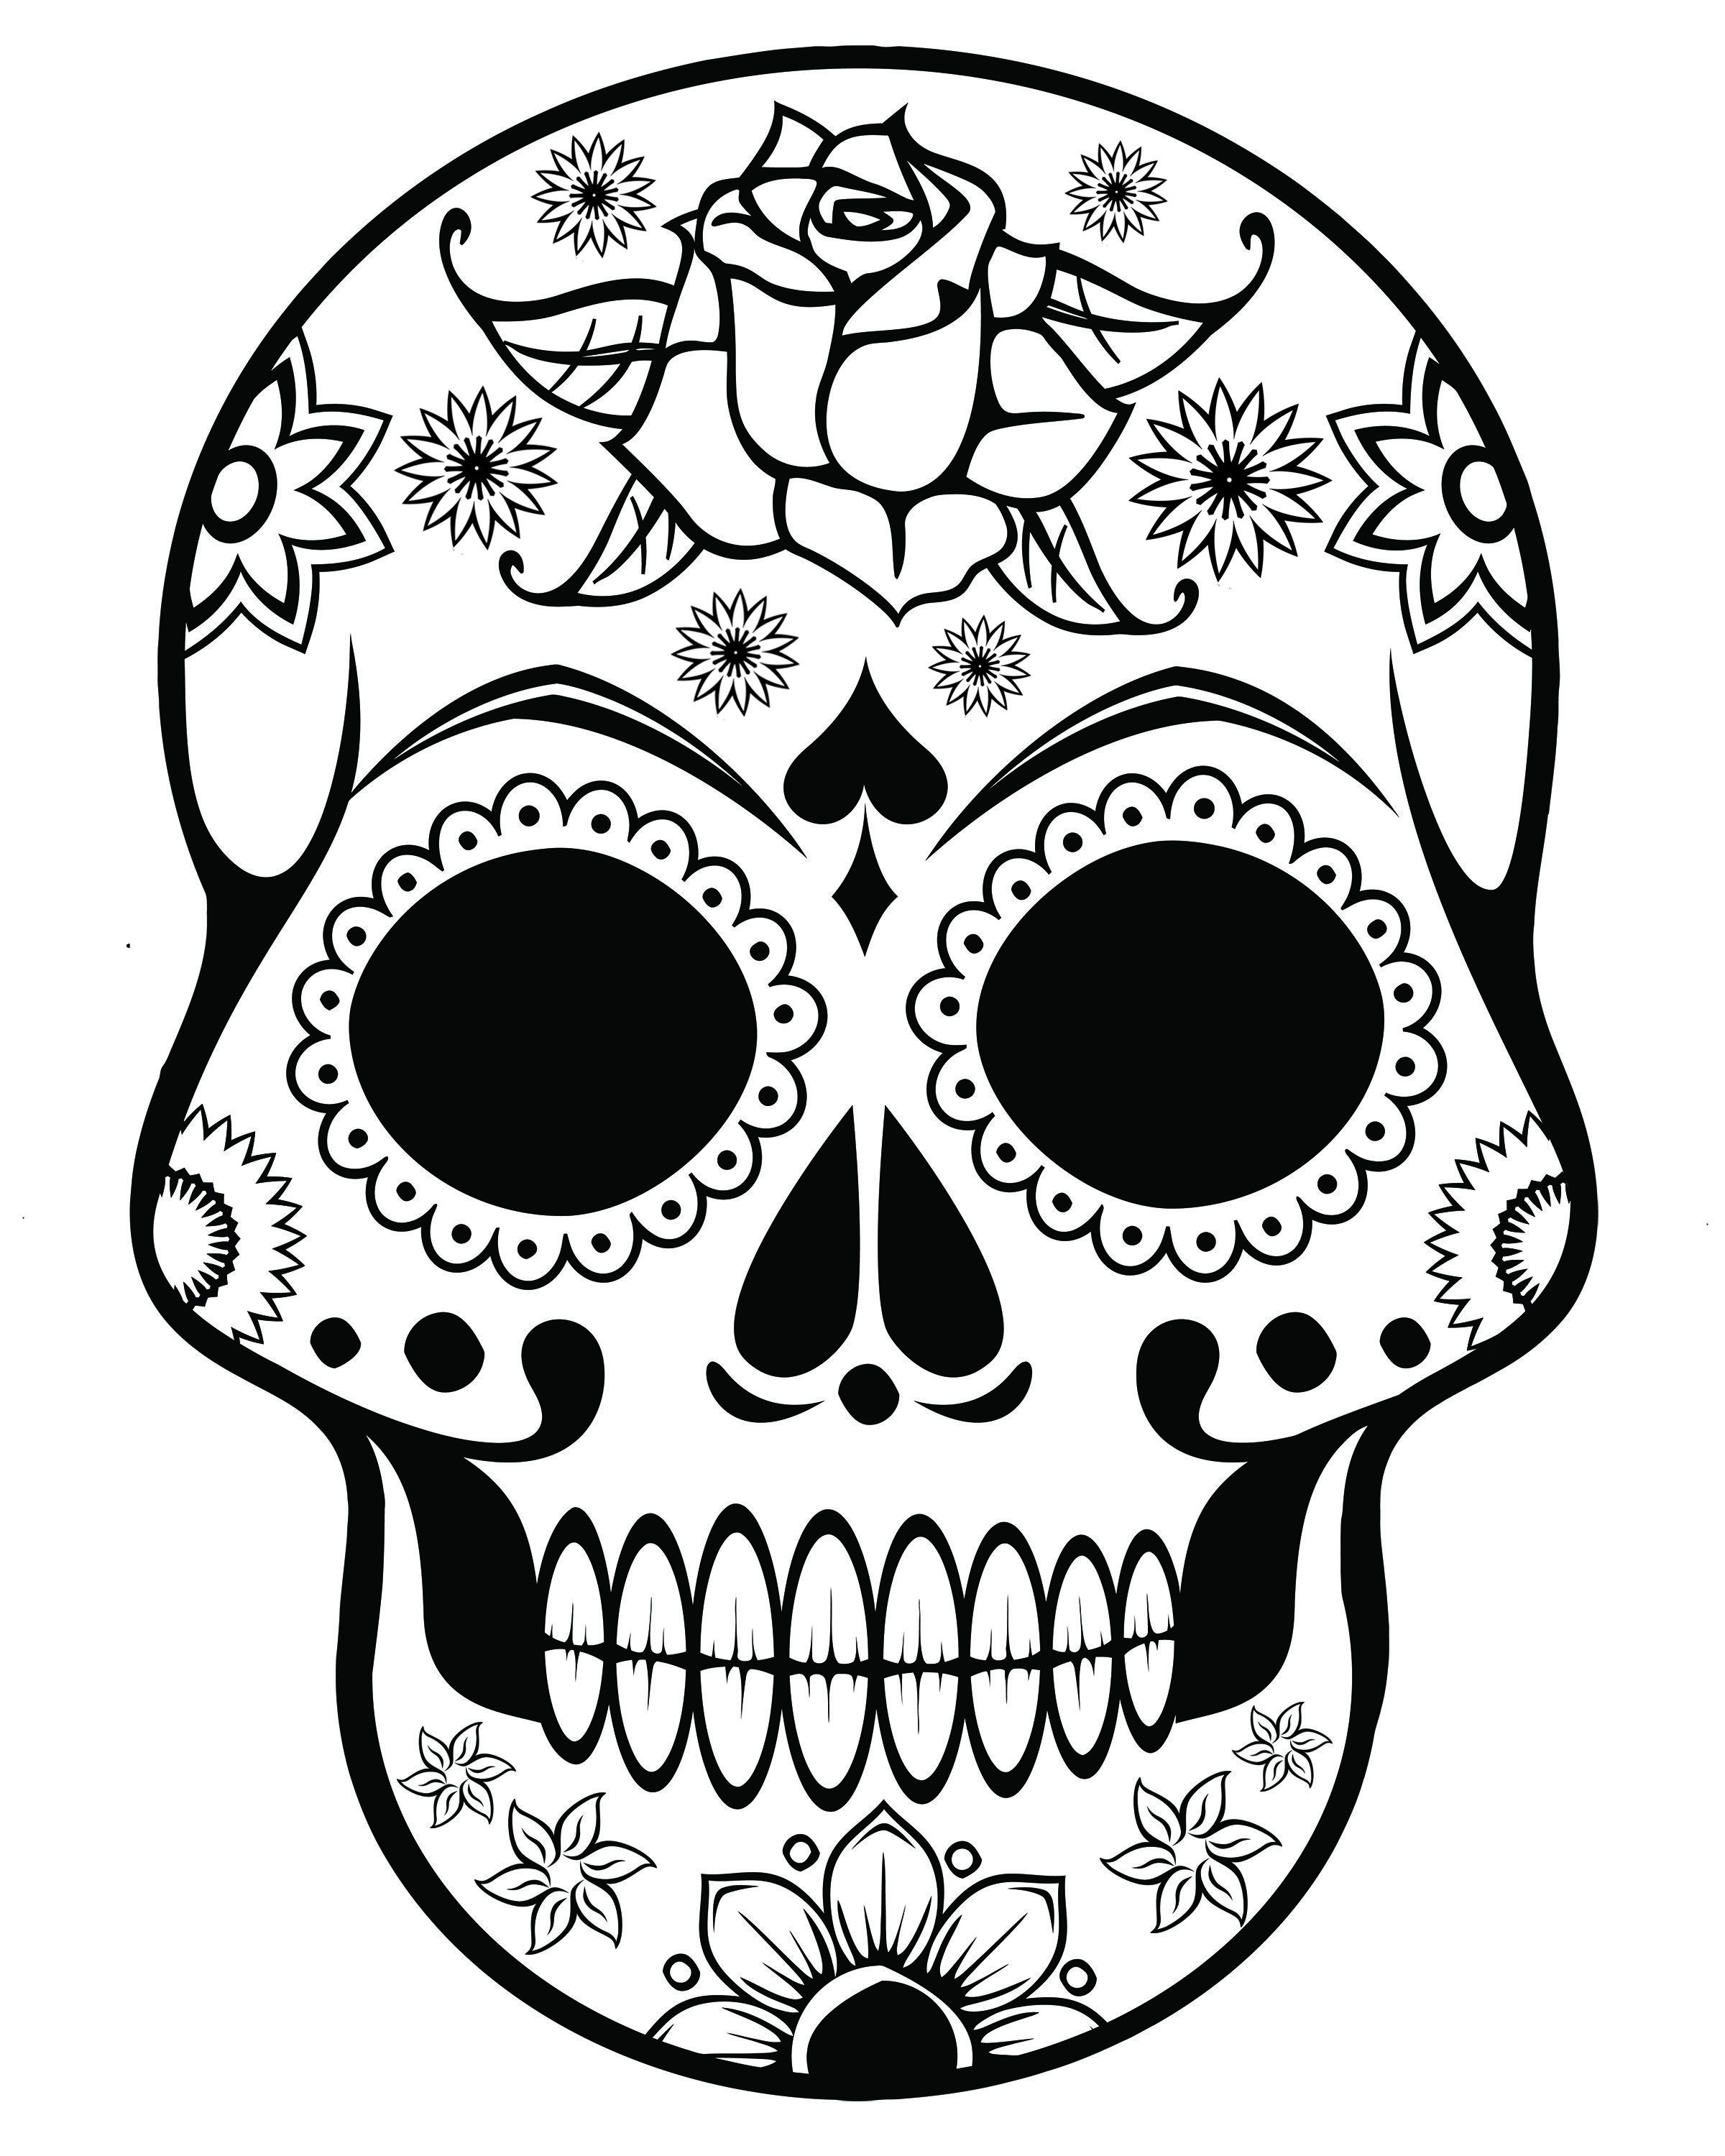 Adult-Coloring-Pages-Skull-51959.jpg (2400×3000) | COLRING PAGES ...